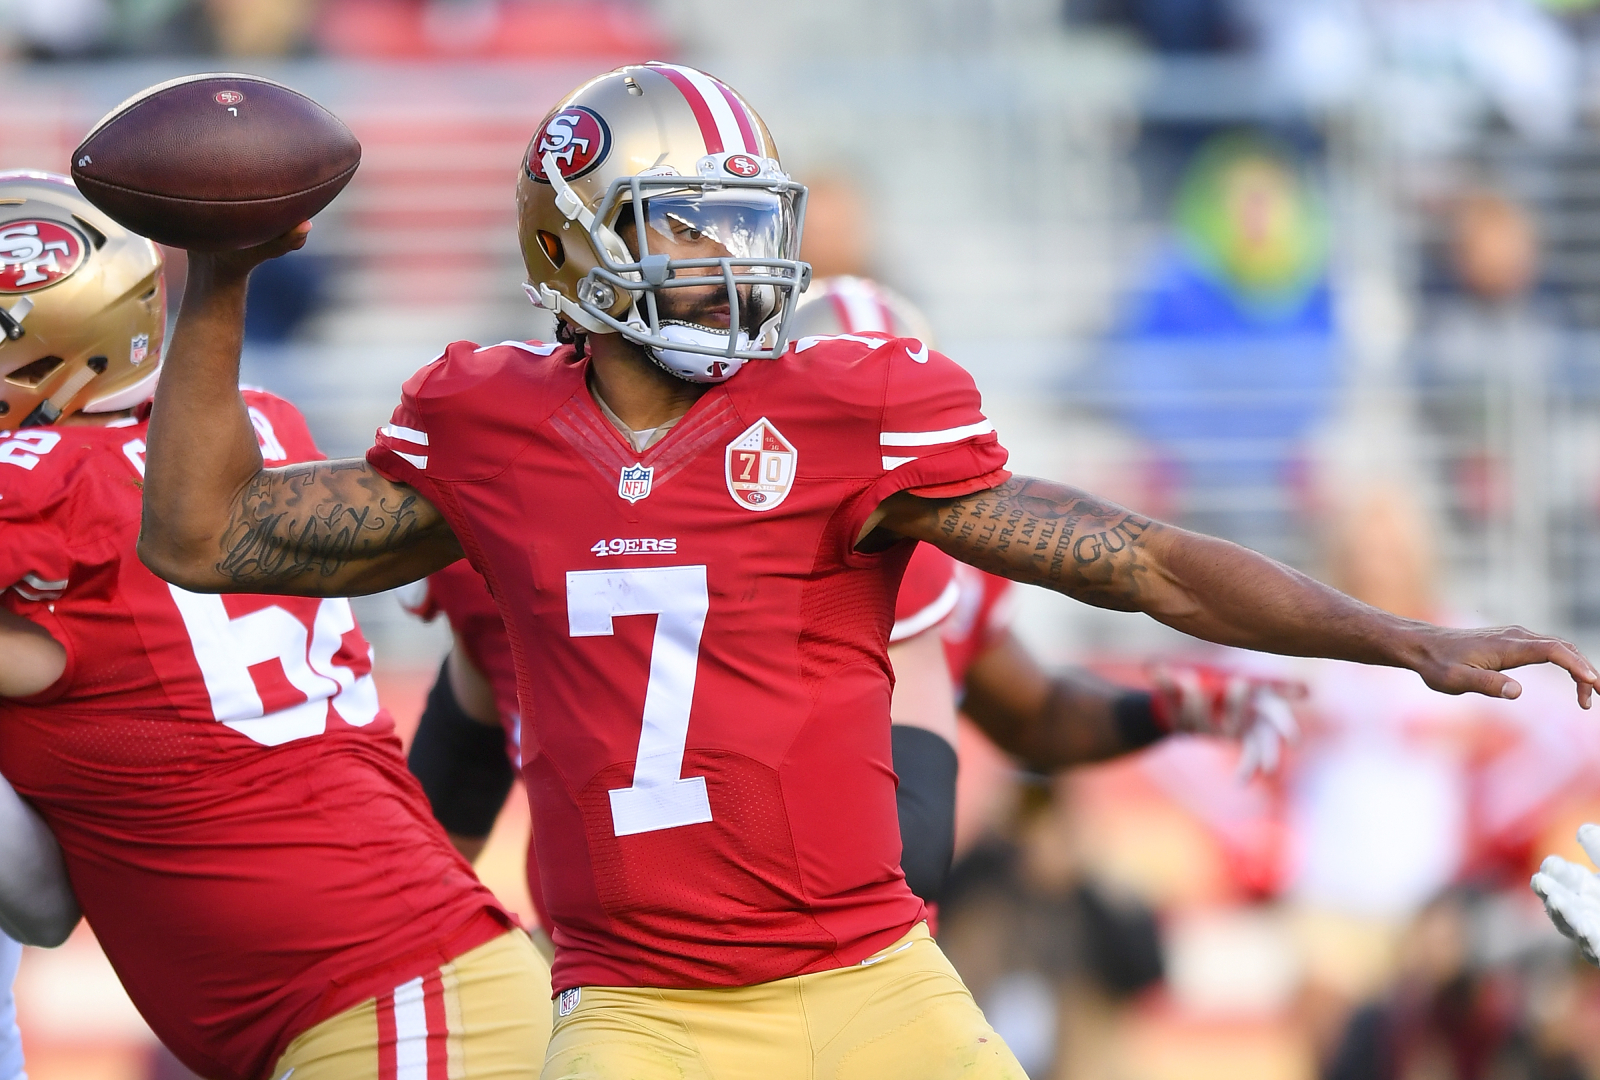 Colin Kaepernick has not played in the NFL since the 2016 season with the 49ers. However, he just received a nomination for the Hall of Fame.